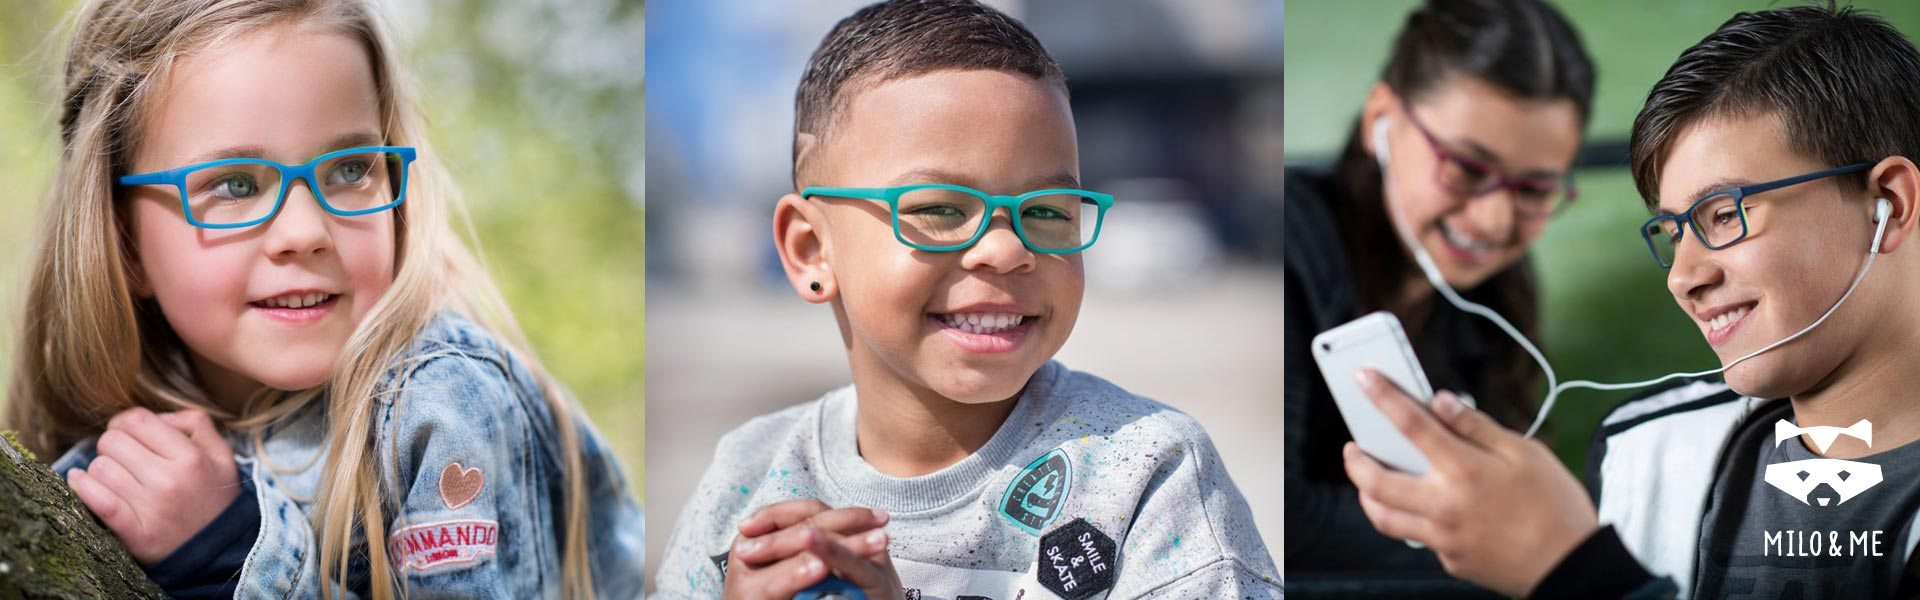 Milo and Me Eyewear - Banner - Optimum RX Lens Specialists